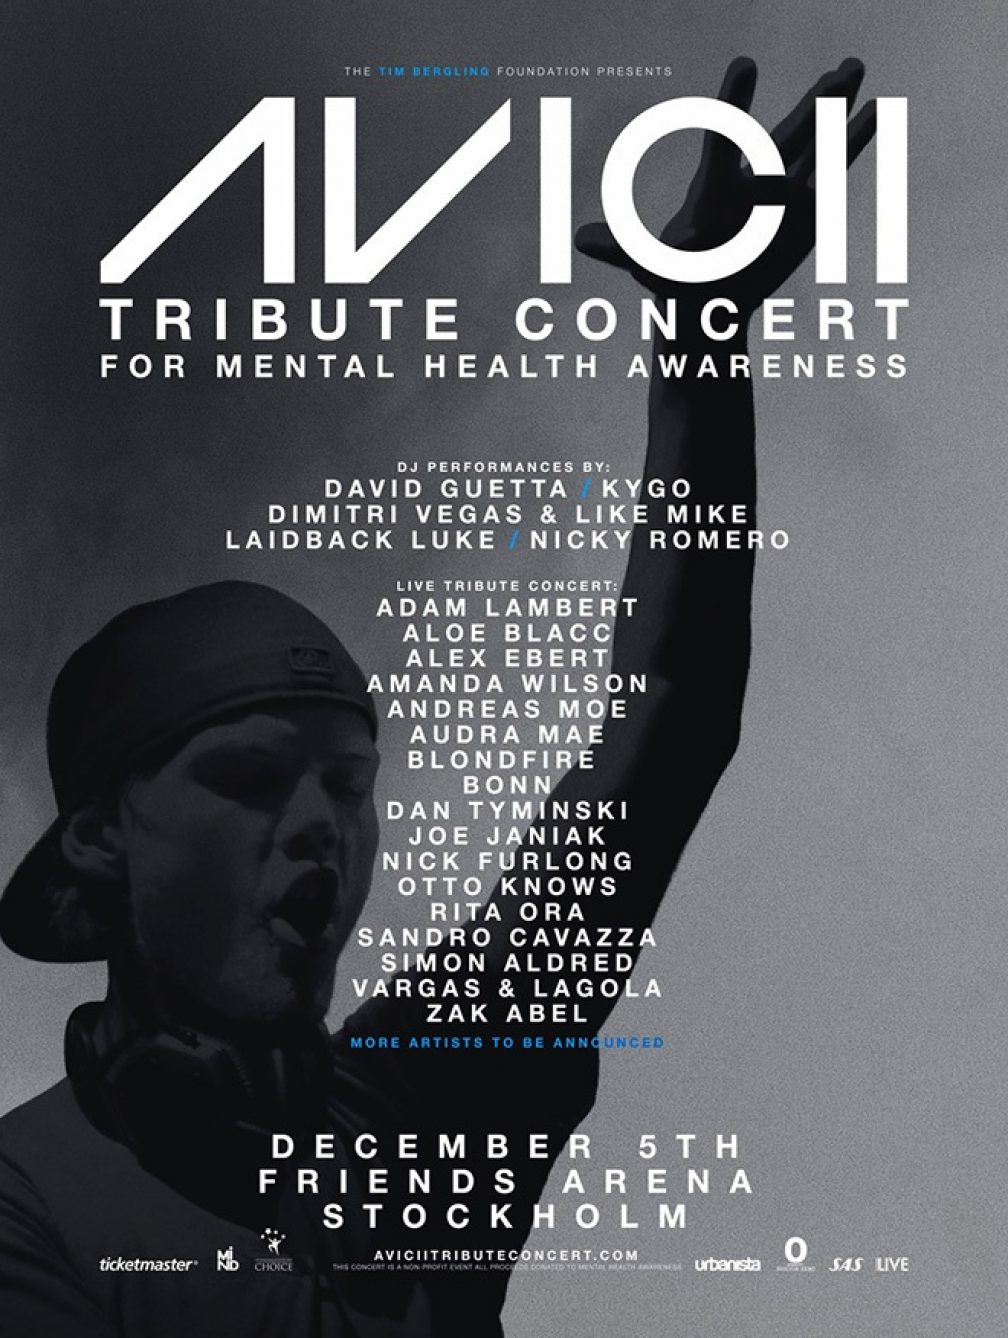 Tribute concert to be held in honour of Avicii in Stockholm